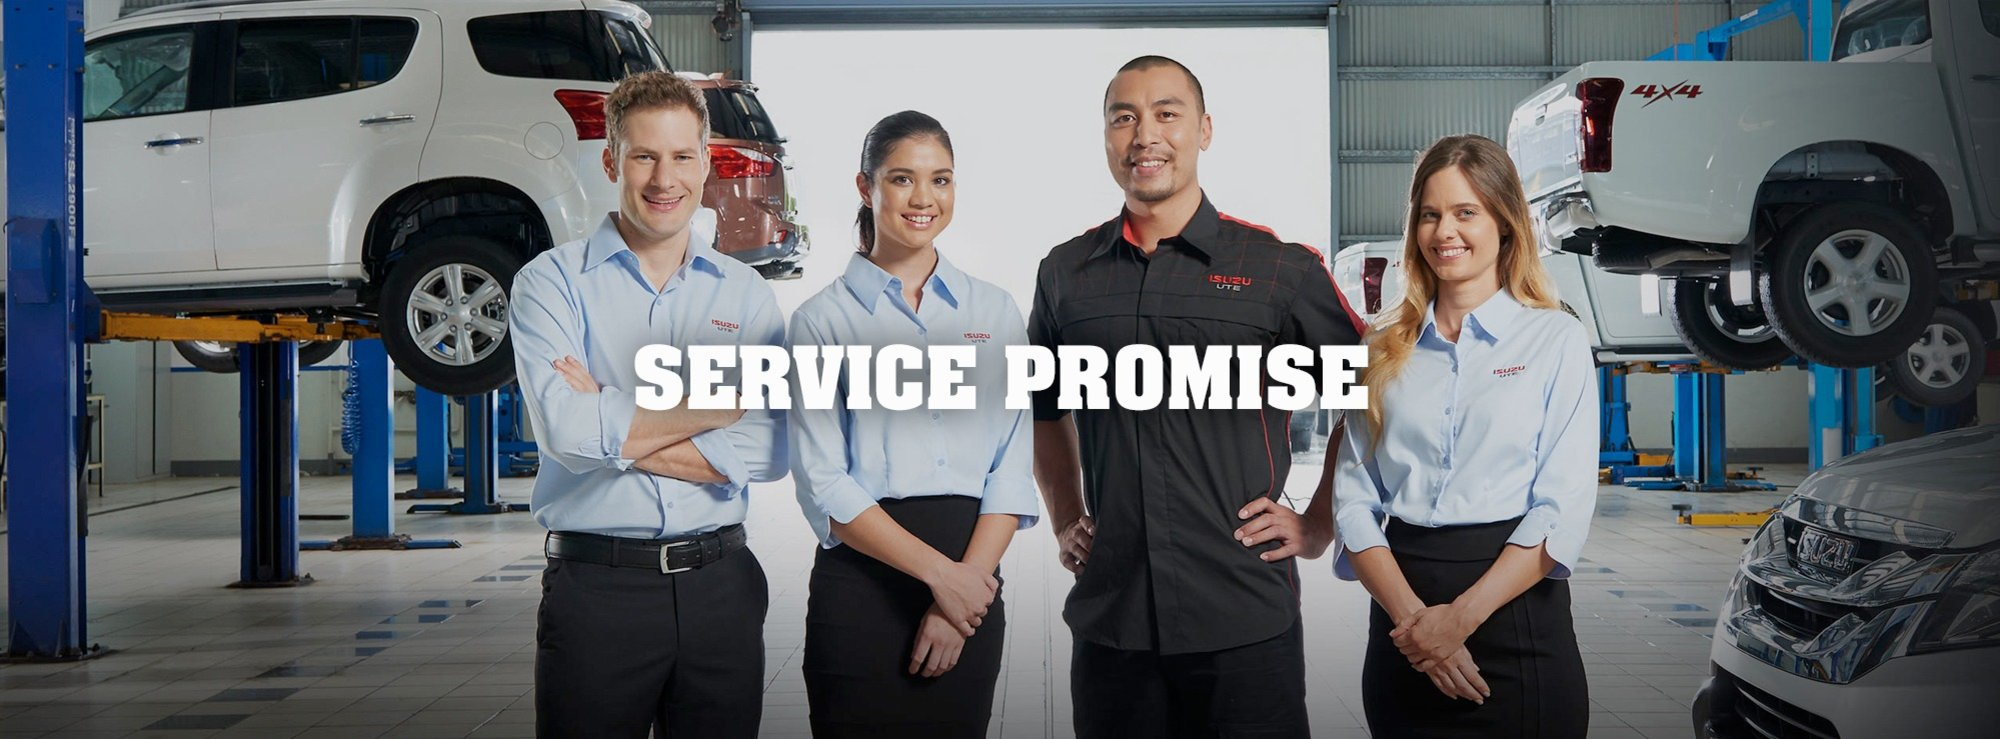 Jarvis Service Promise